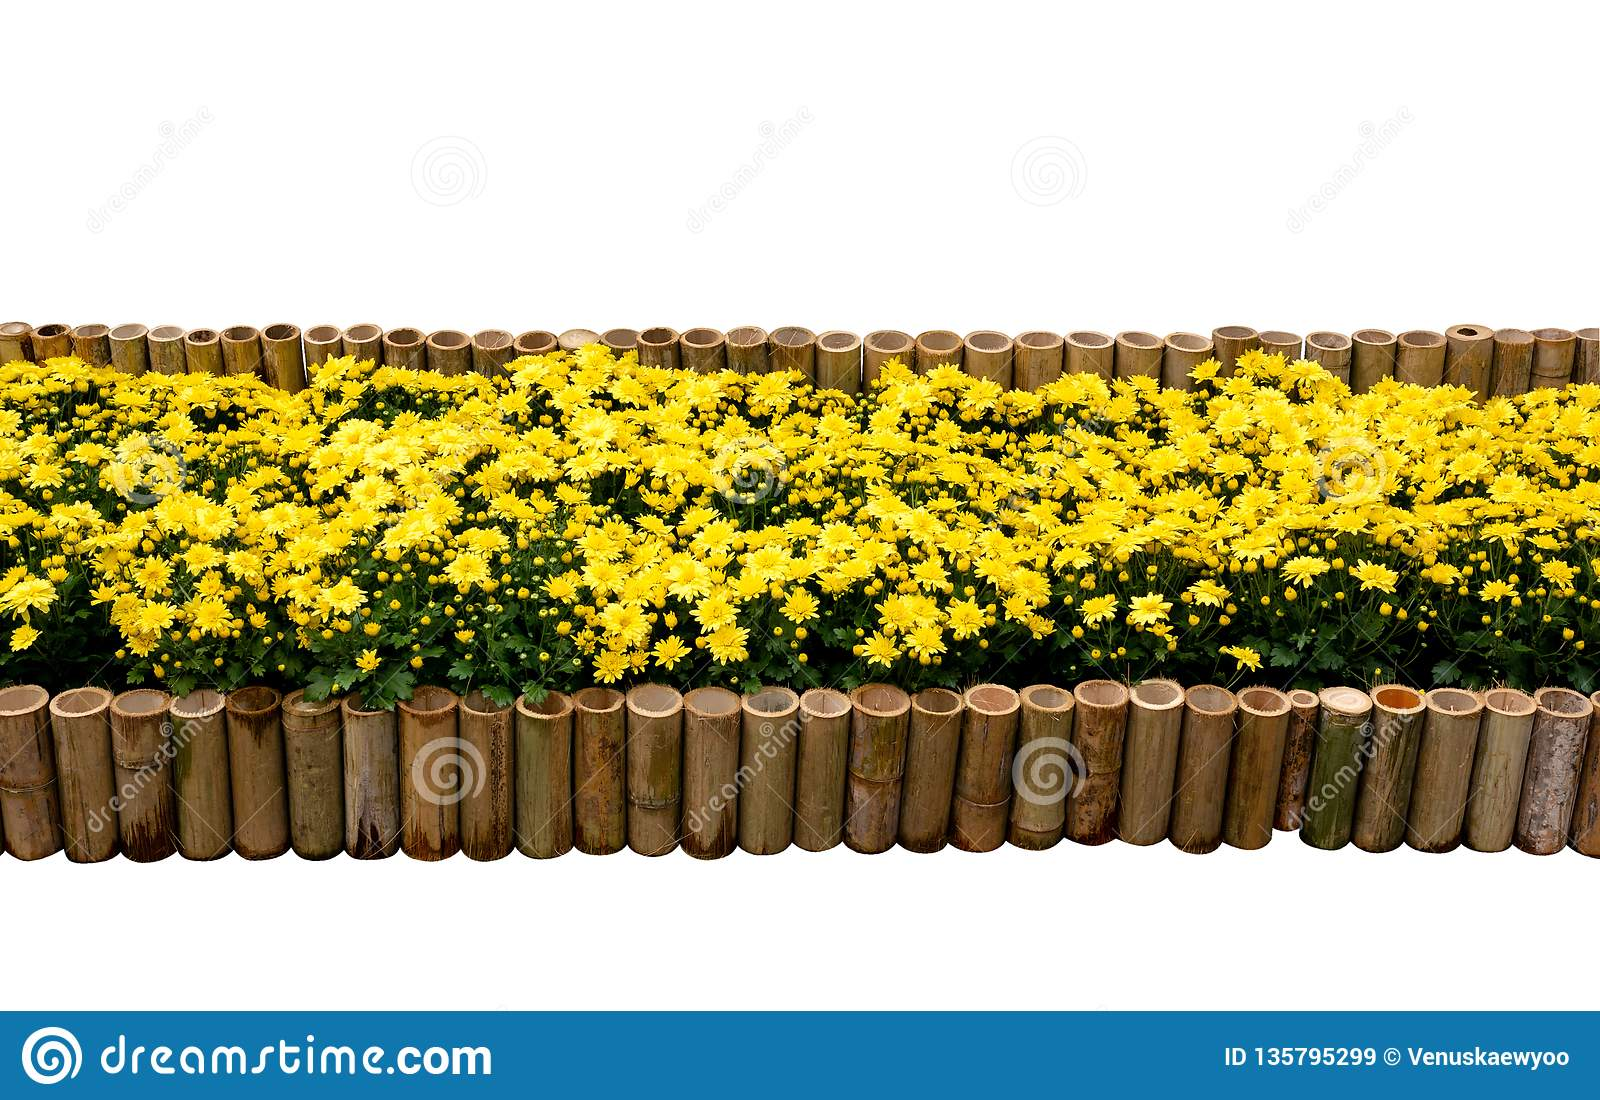 Chrysanthemum flowers in bamboo fence for backdrop isolated on white background, clipping path